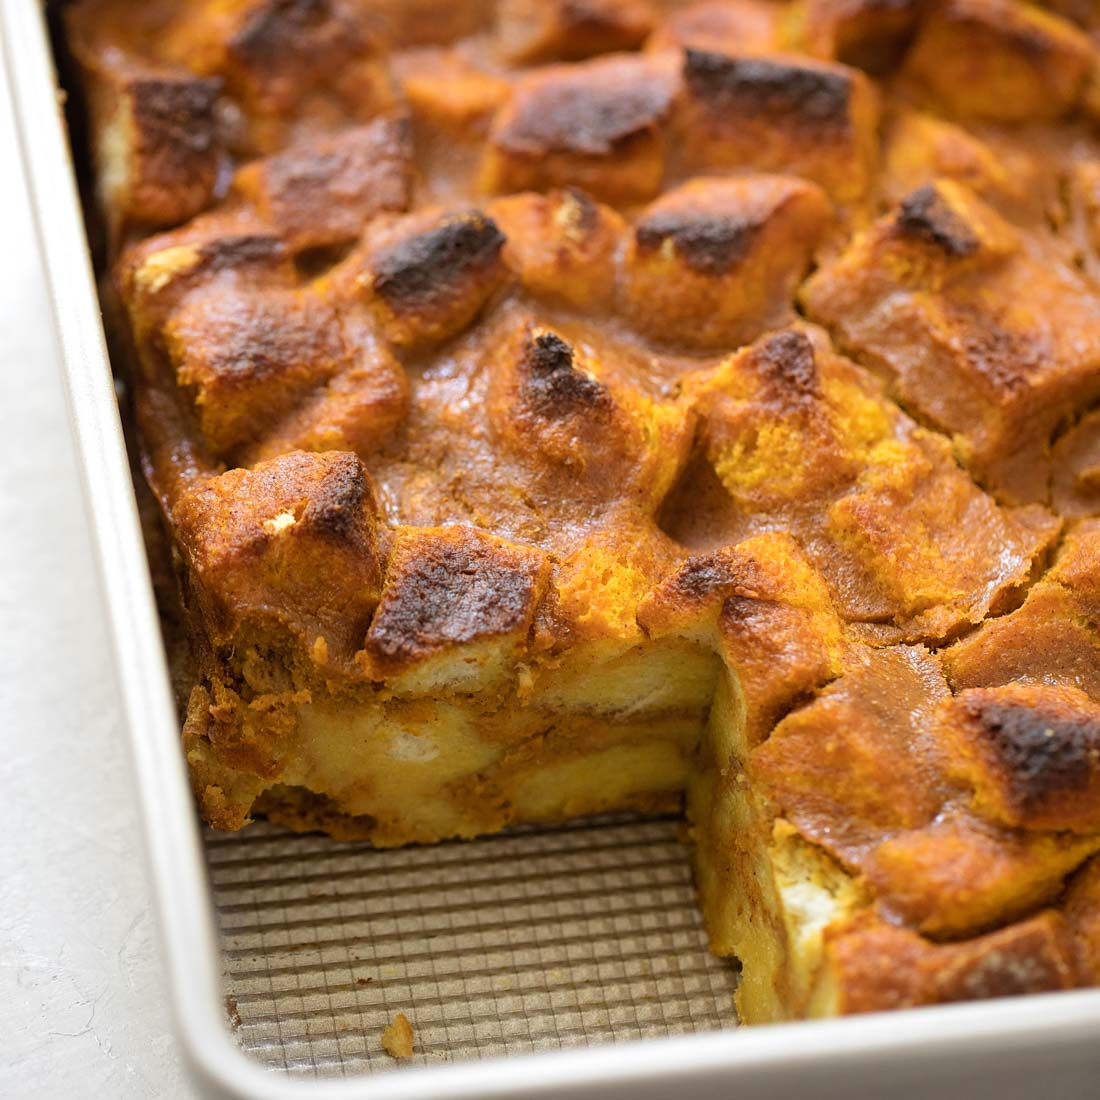 Pumpkin bread pudding baked in dish